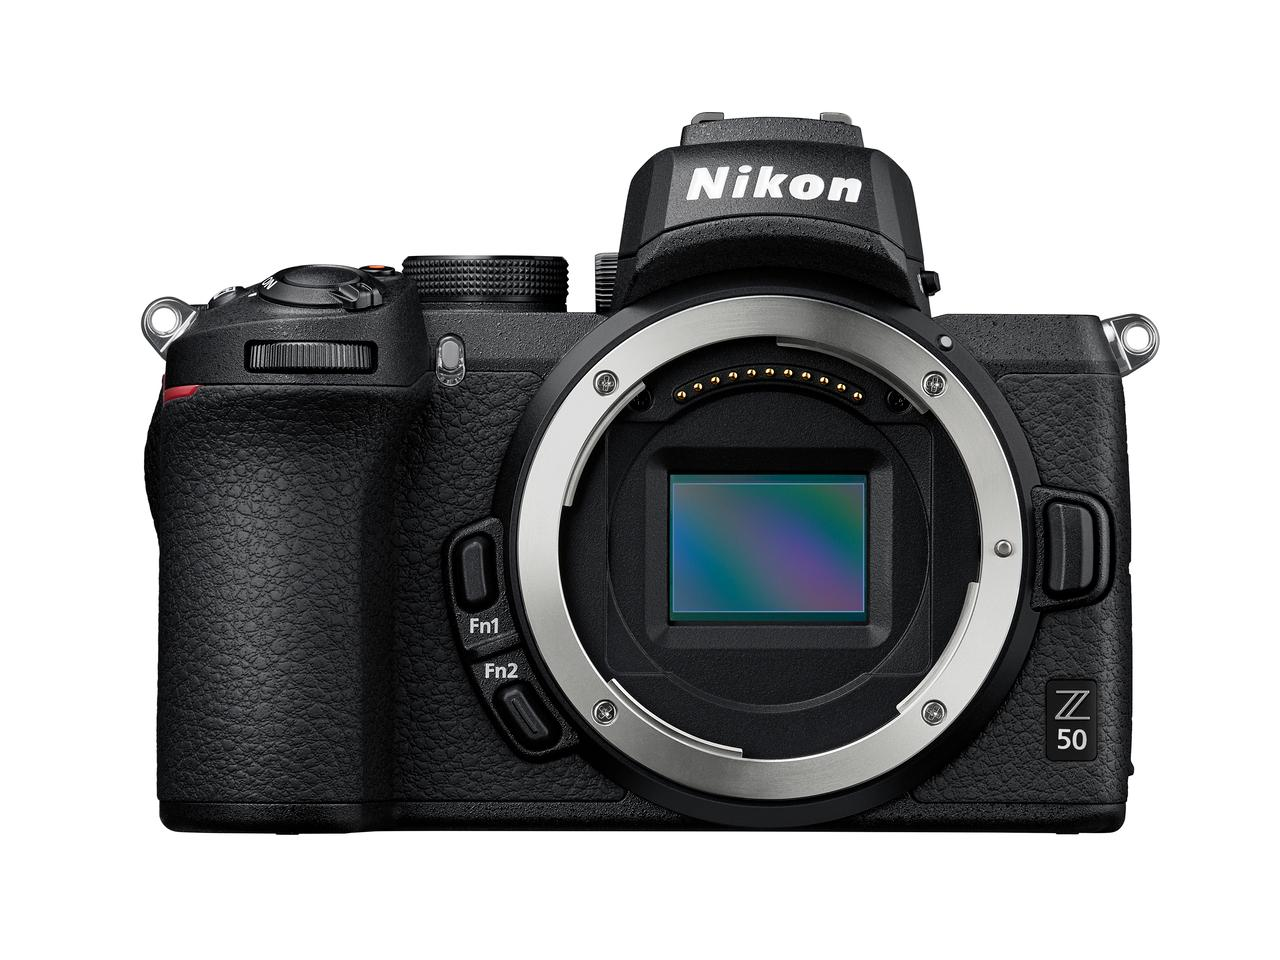 The Nikon Z 50 is built around a 20.9 MP APS-C CMOS sensor